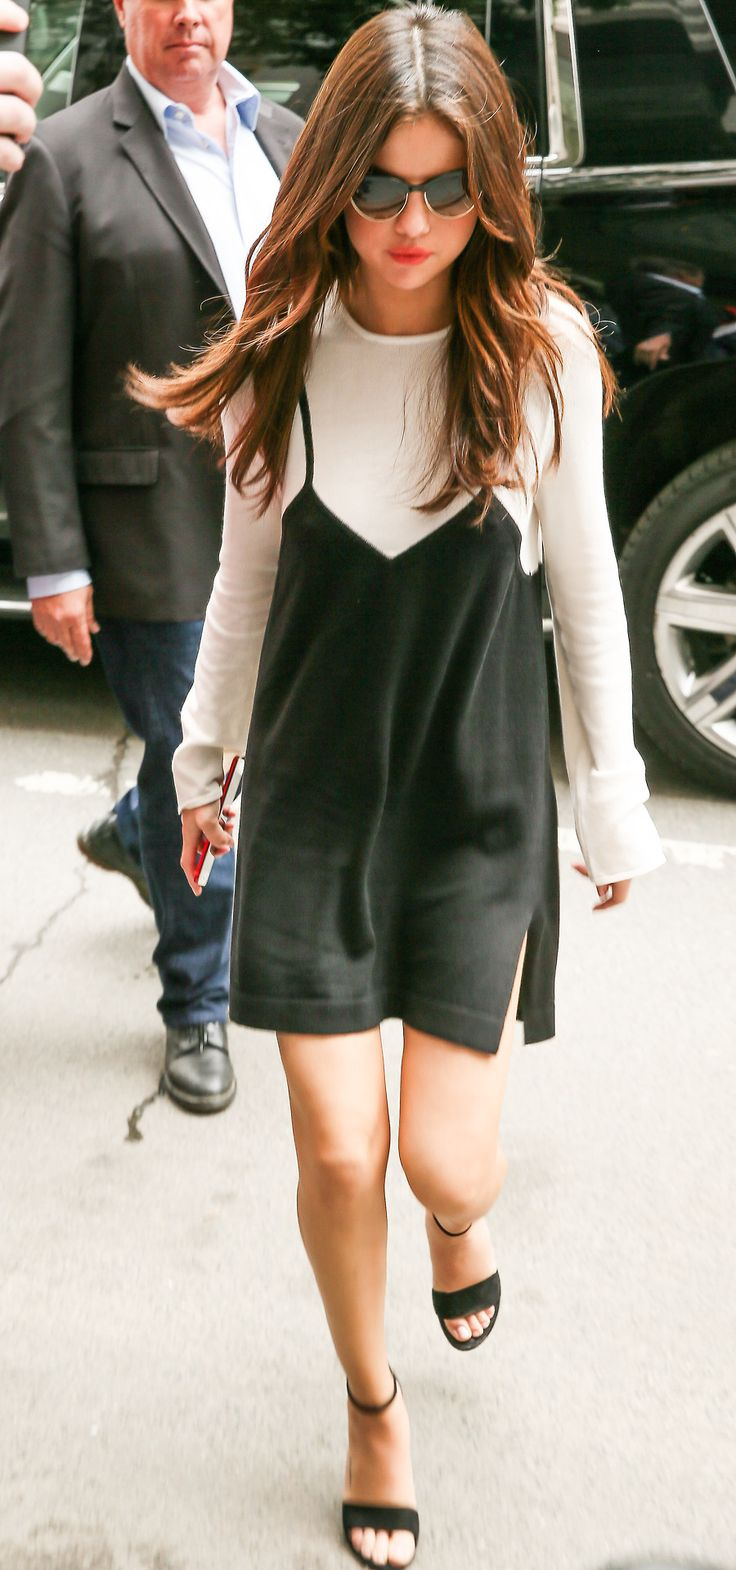 Selena Gomez News — June 5: [More] Selena seen out and about in New...